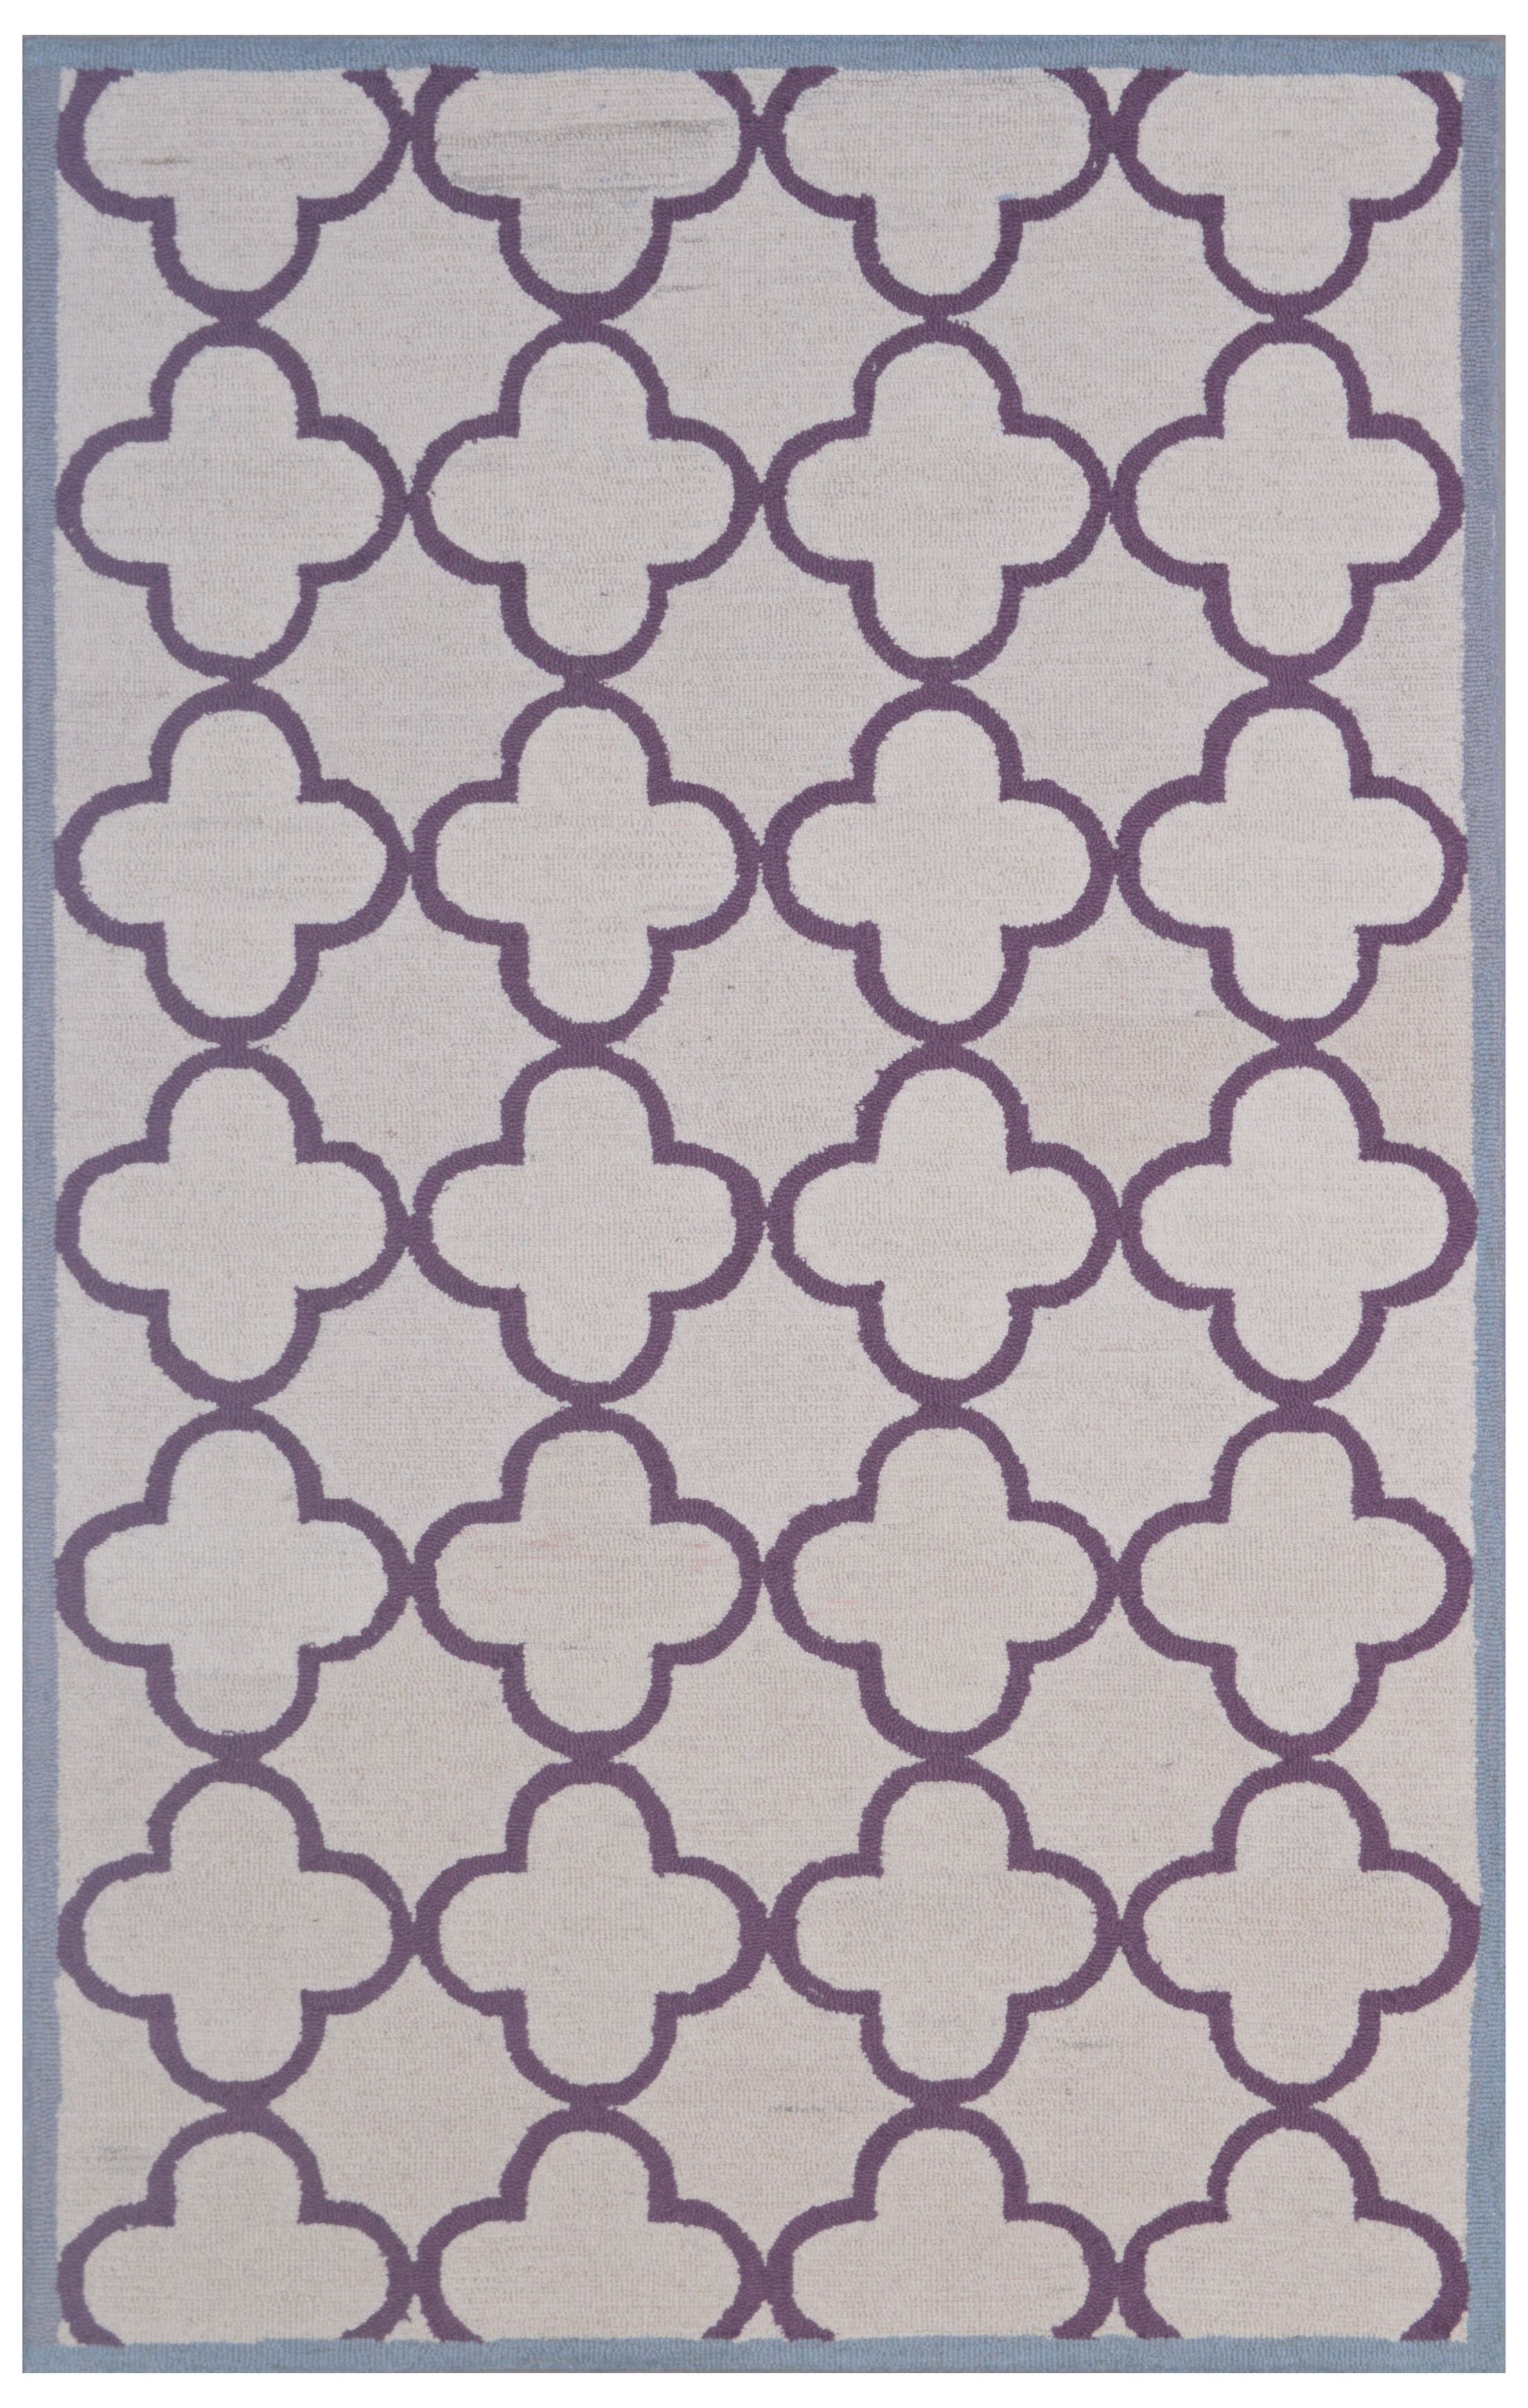 Wool Hand-Tufted Ivory/Purple Area Rug Rug Size: 5' x 8'